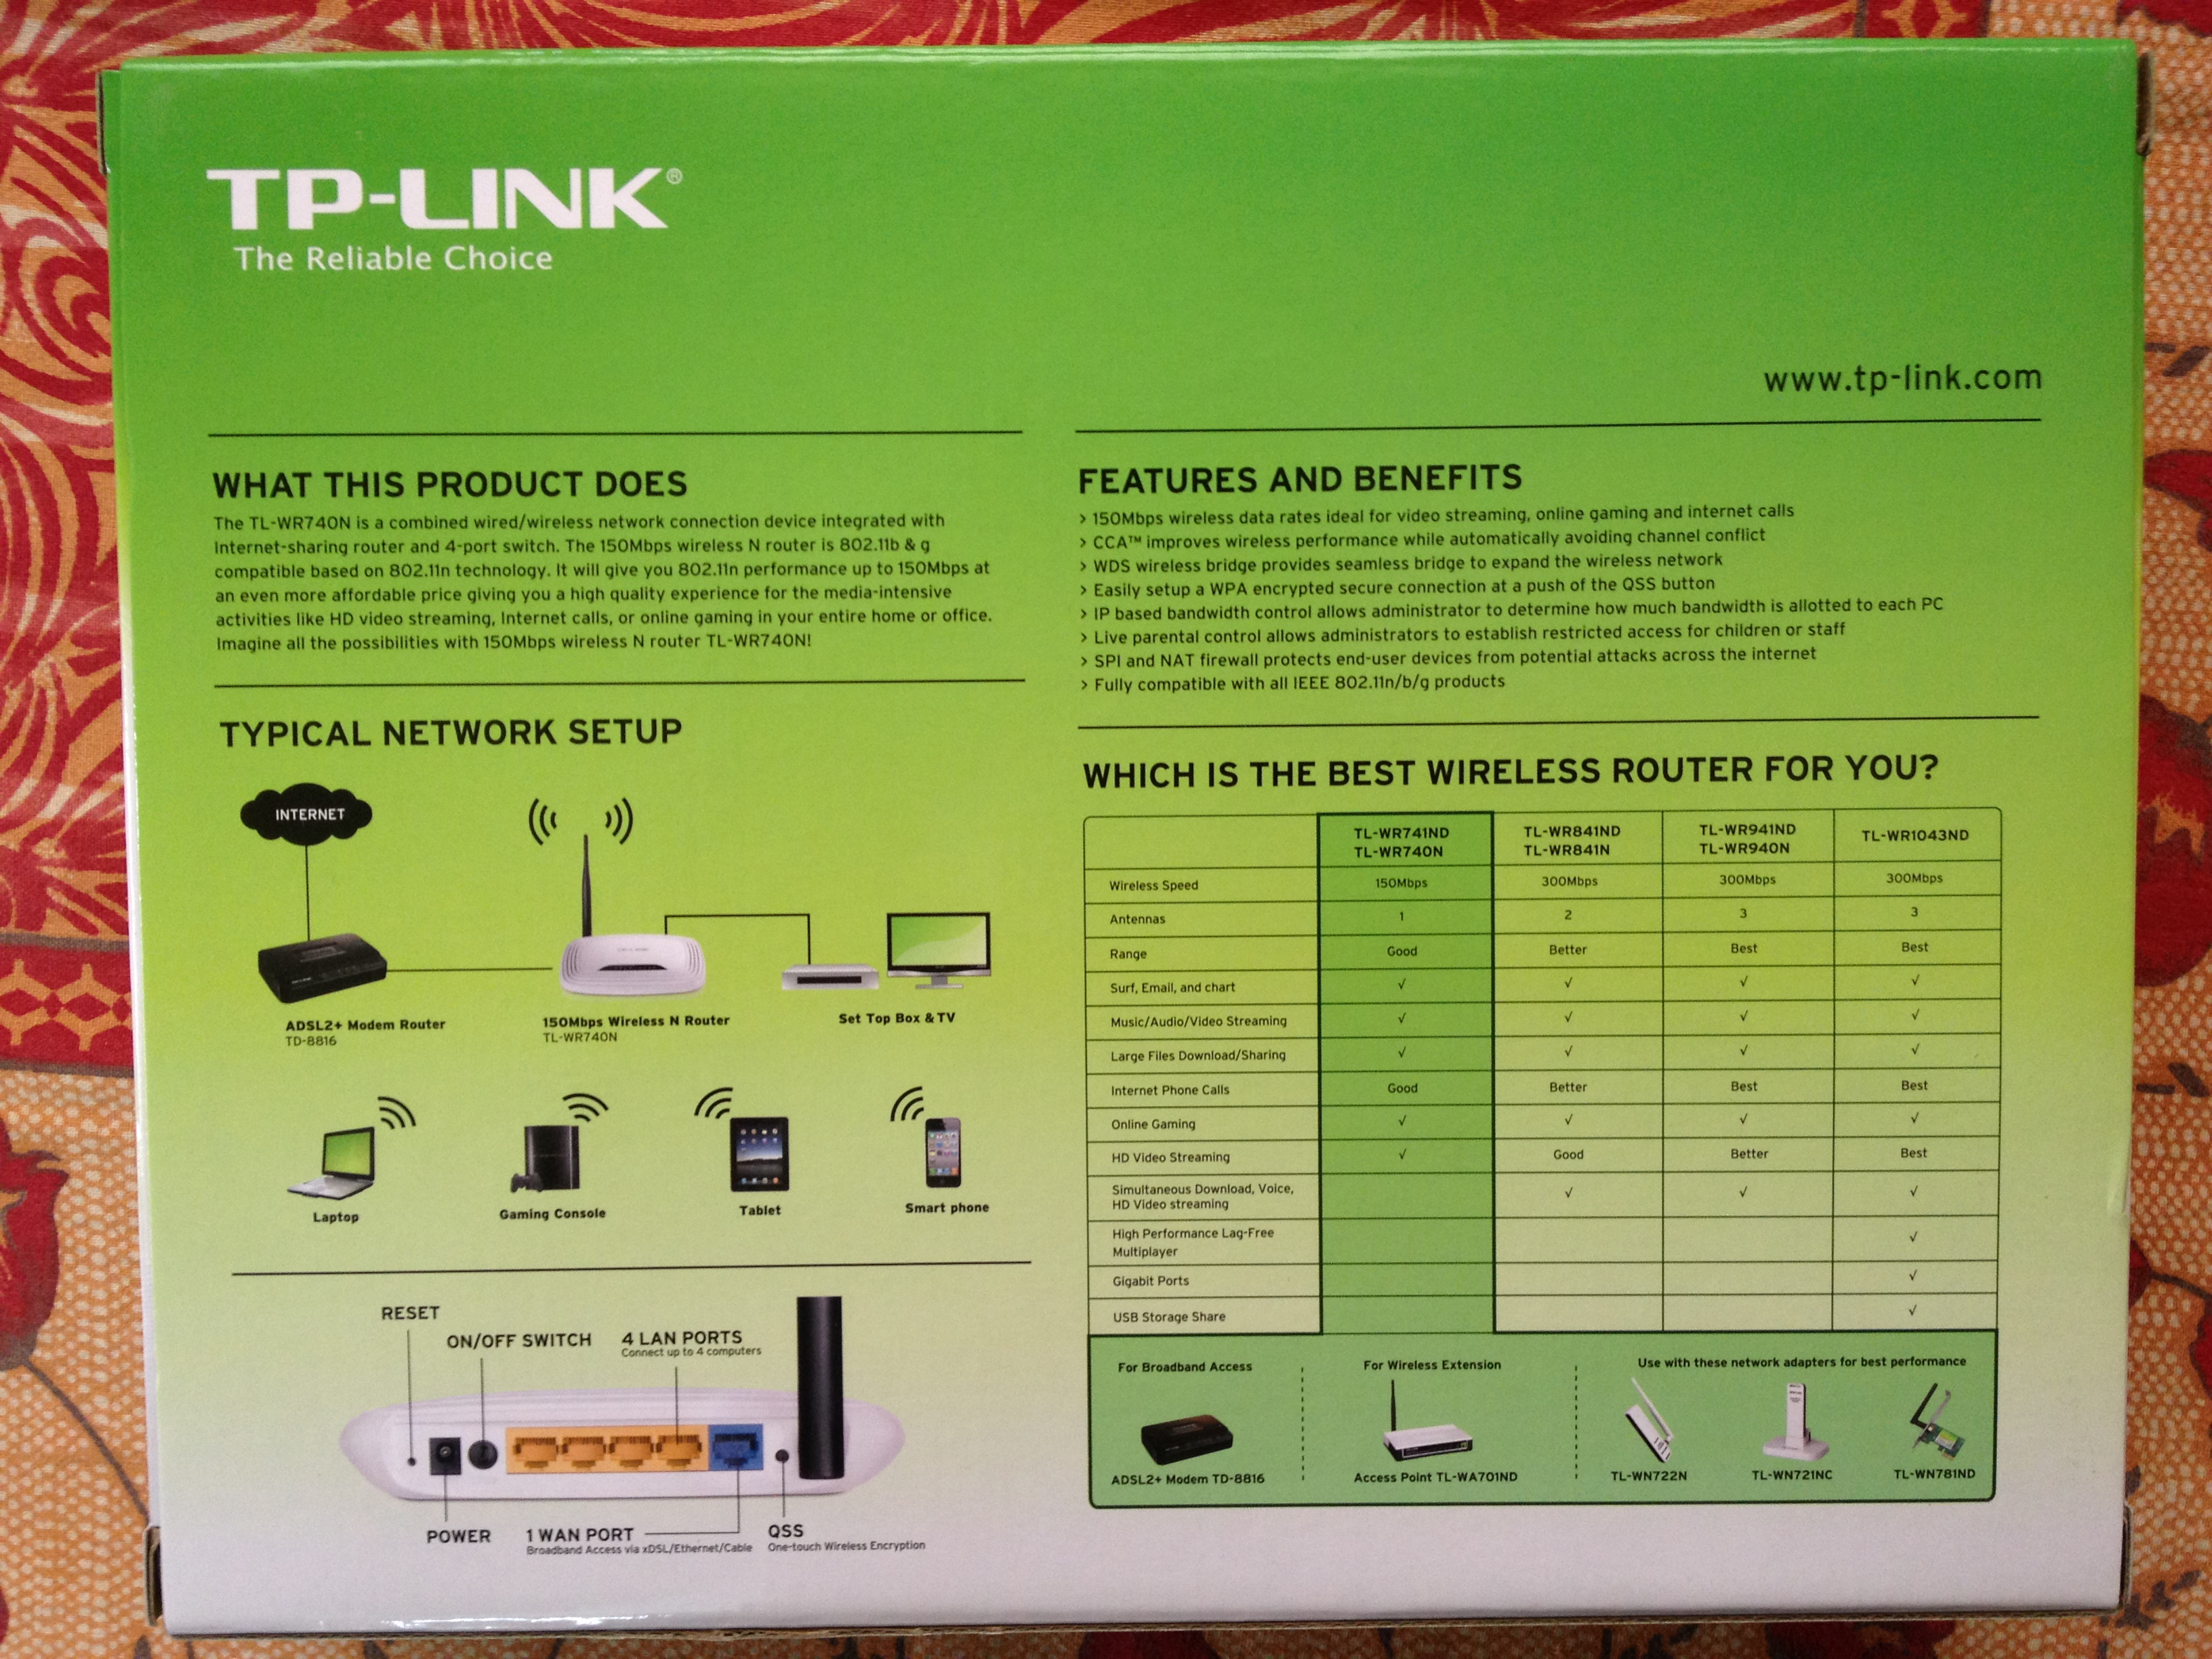 TP-LINK TL-WR740N Review-Images,What's Inside Box & Where to